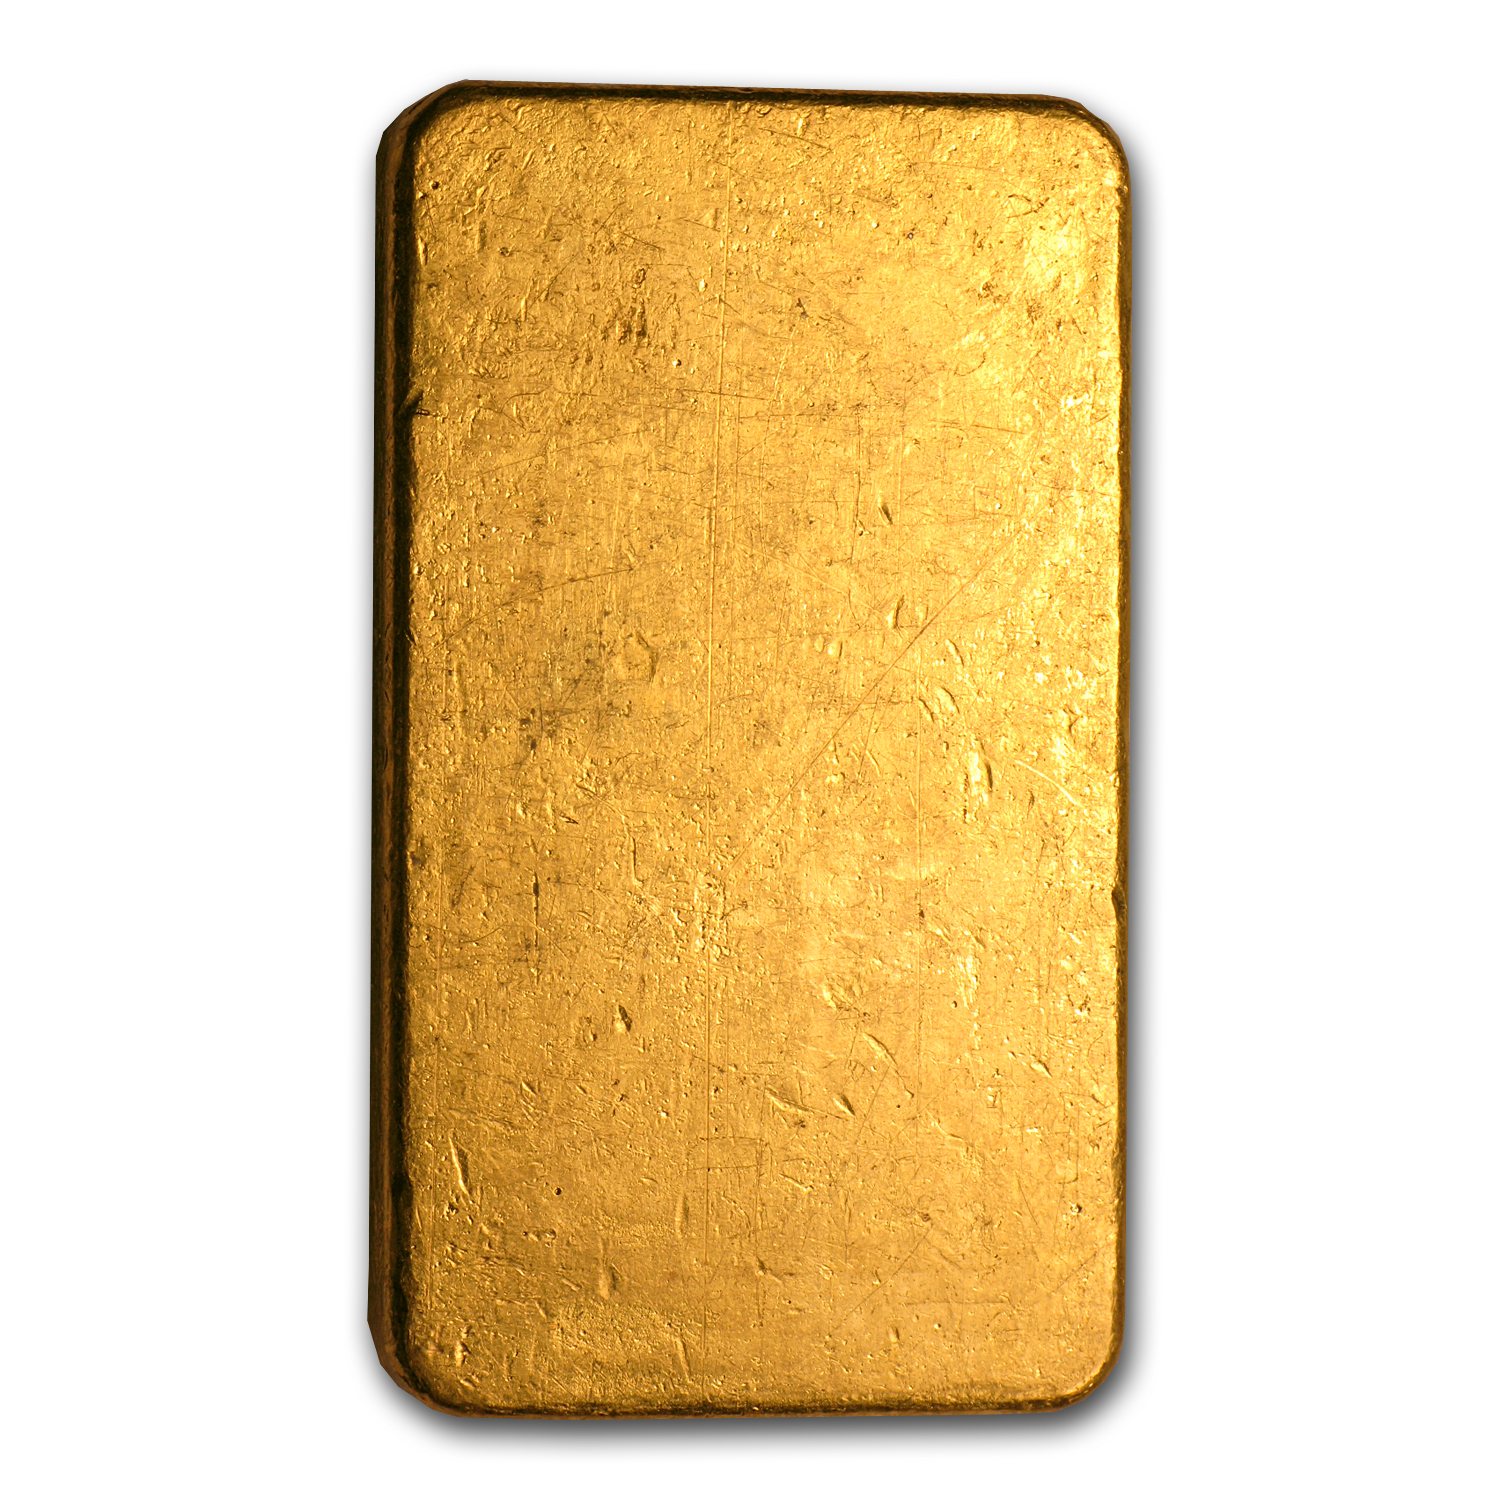 10 oz Gold Bars - Swiss Bank Corporation